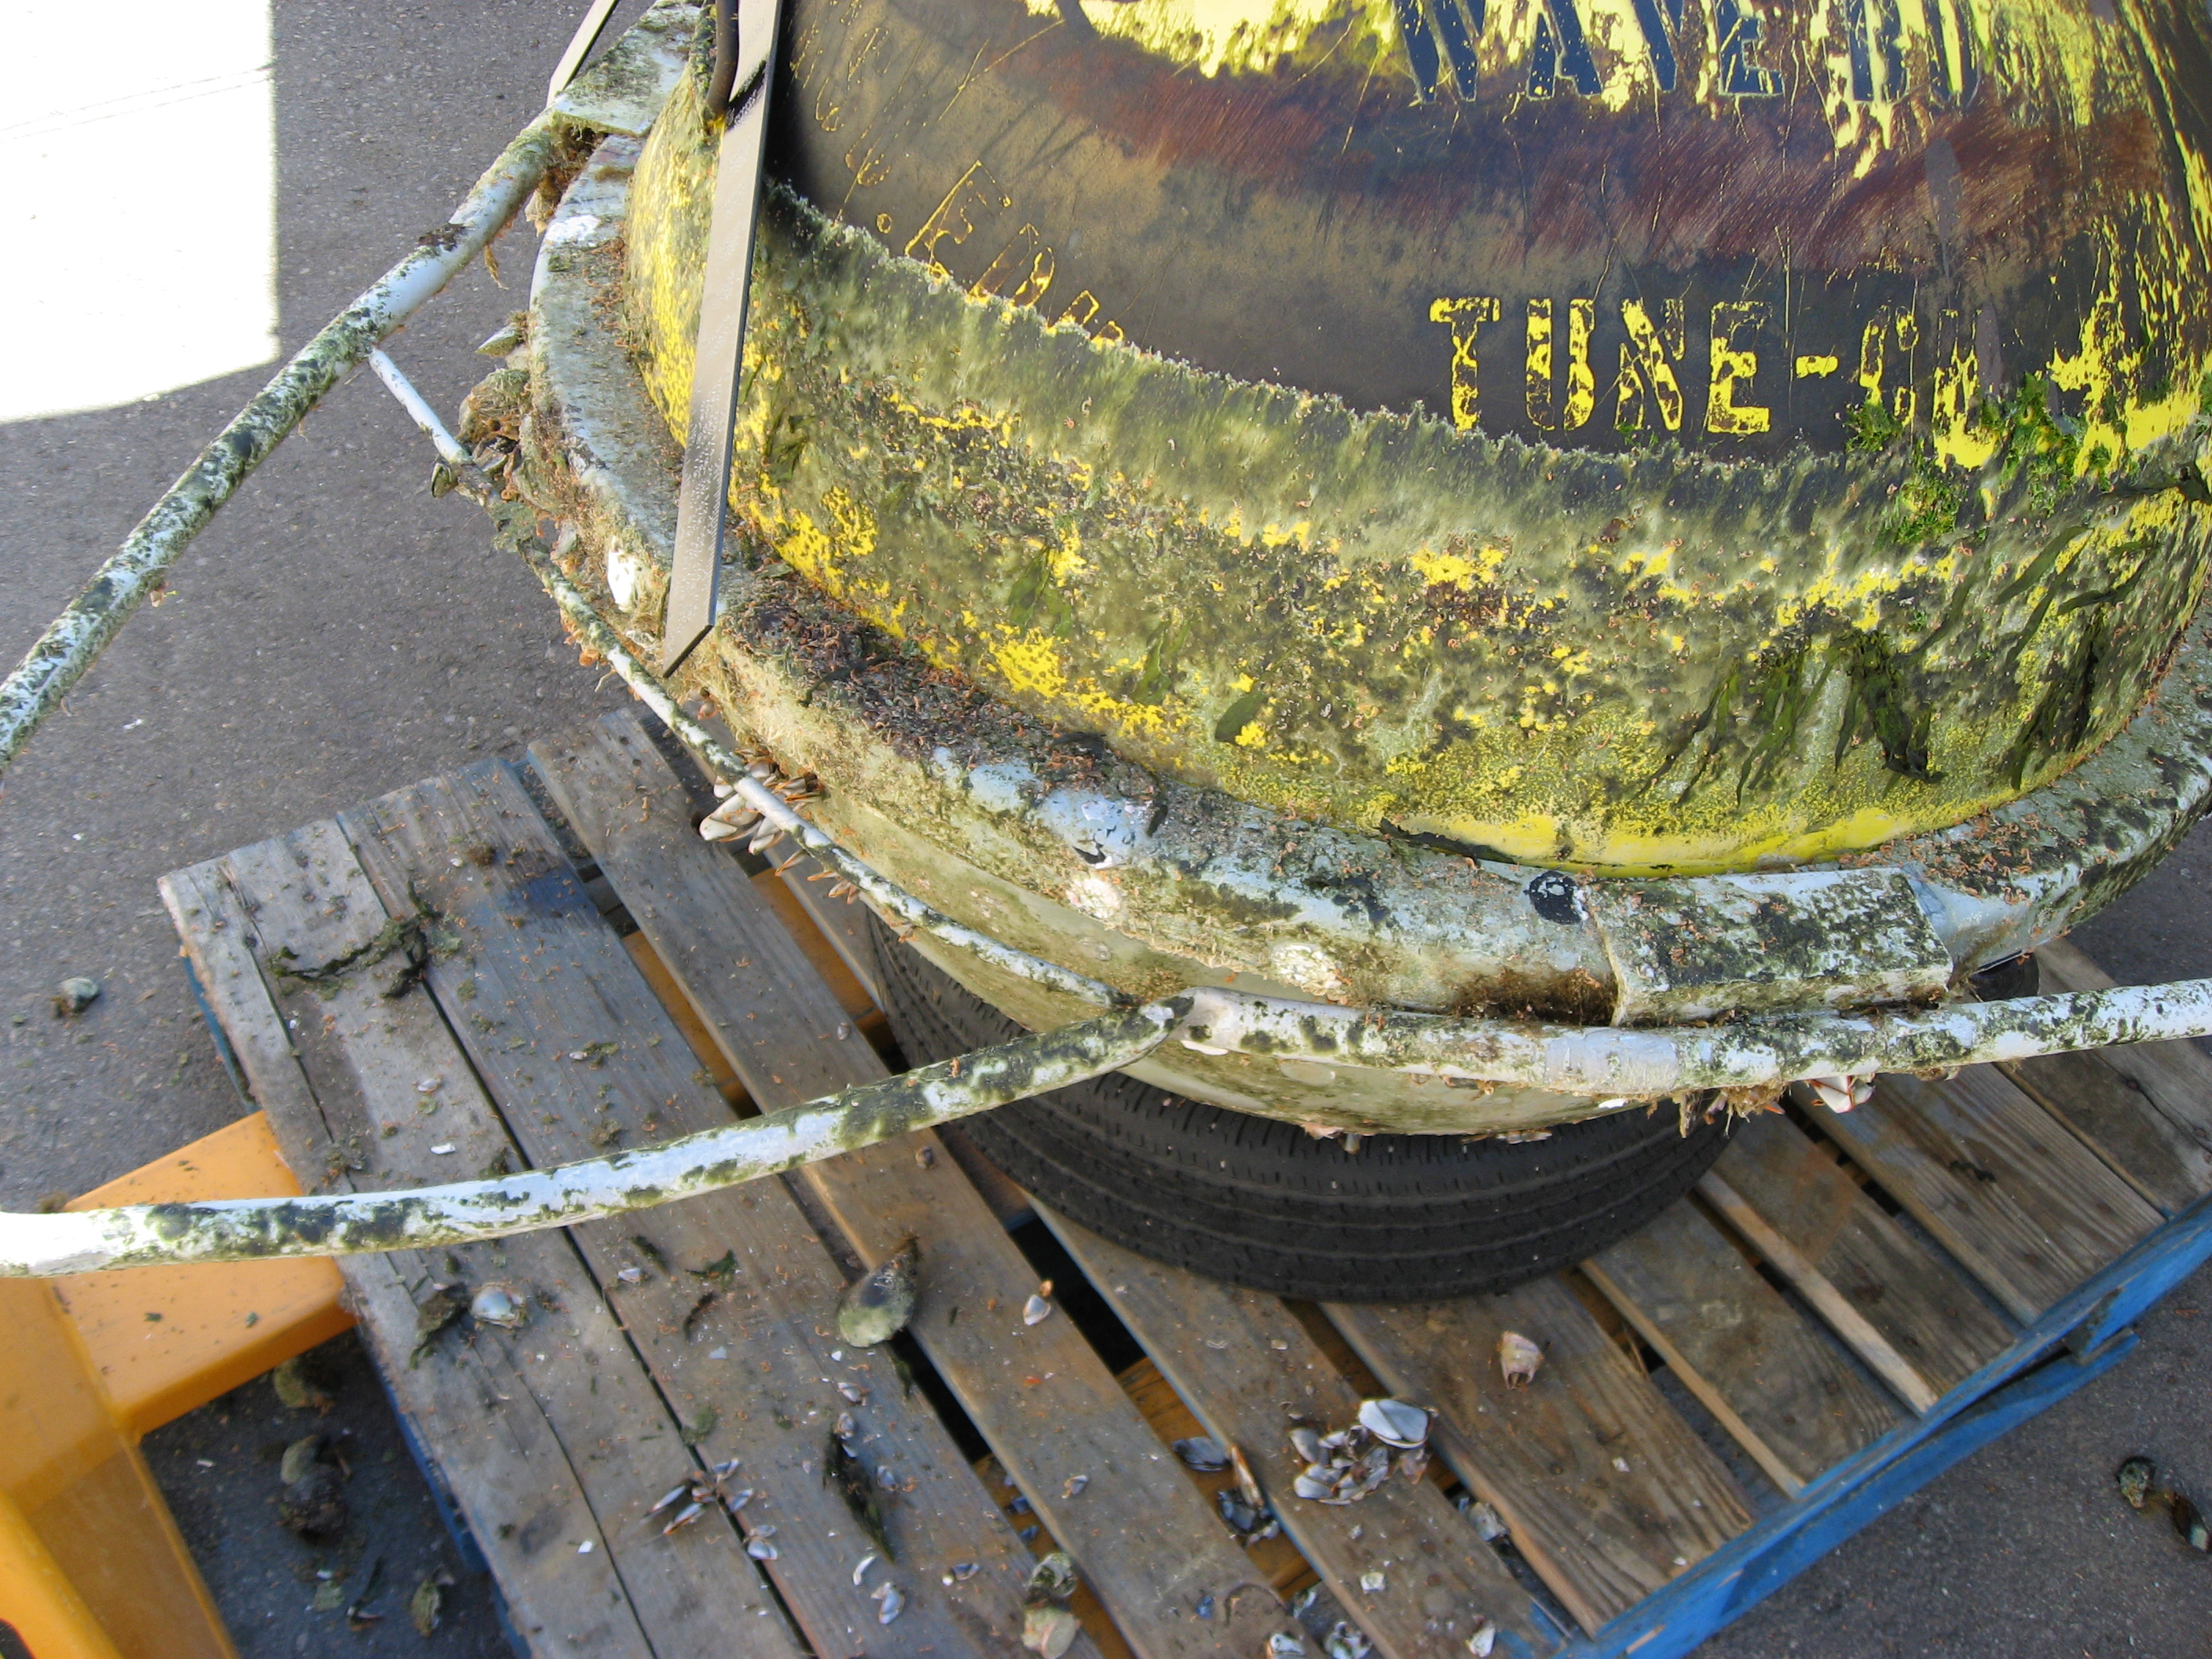 Close view of buoy damage from collision